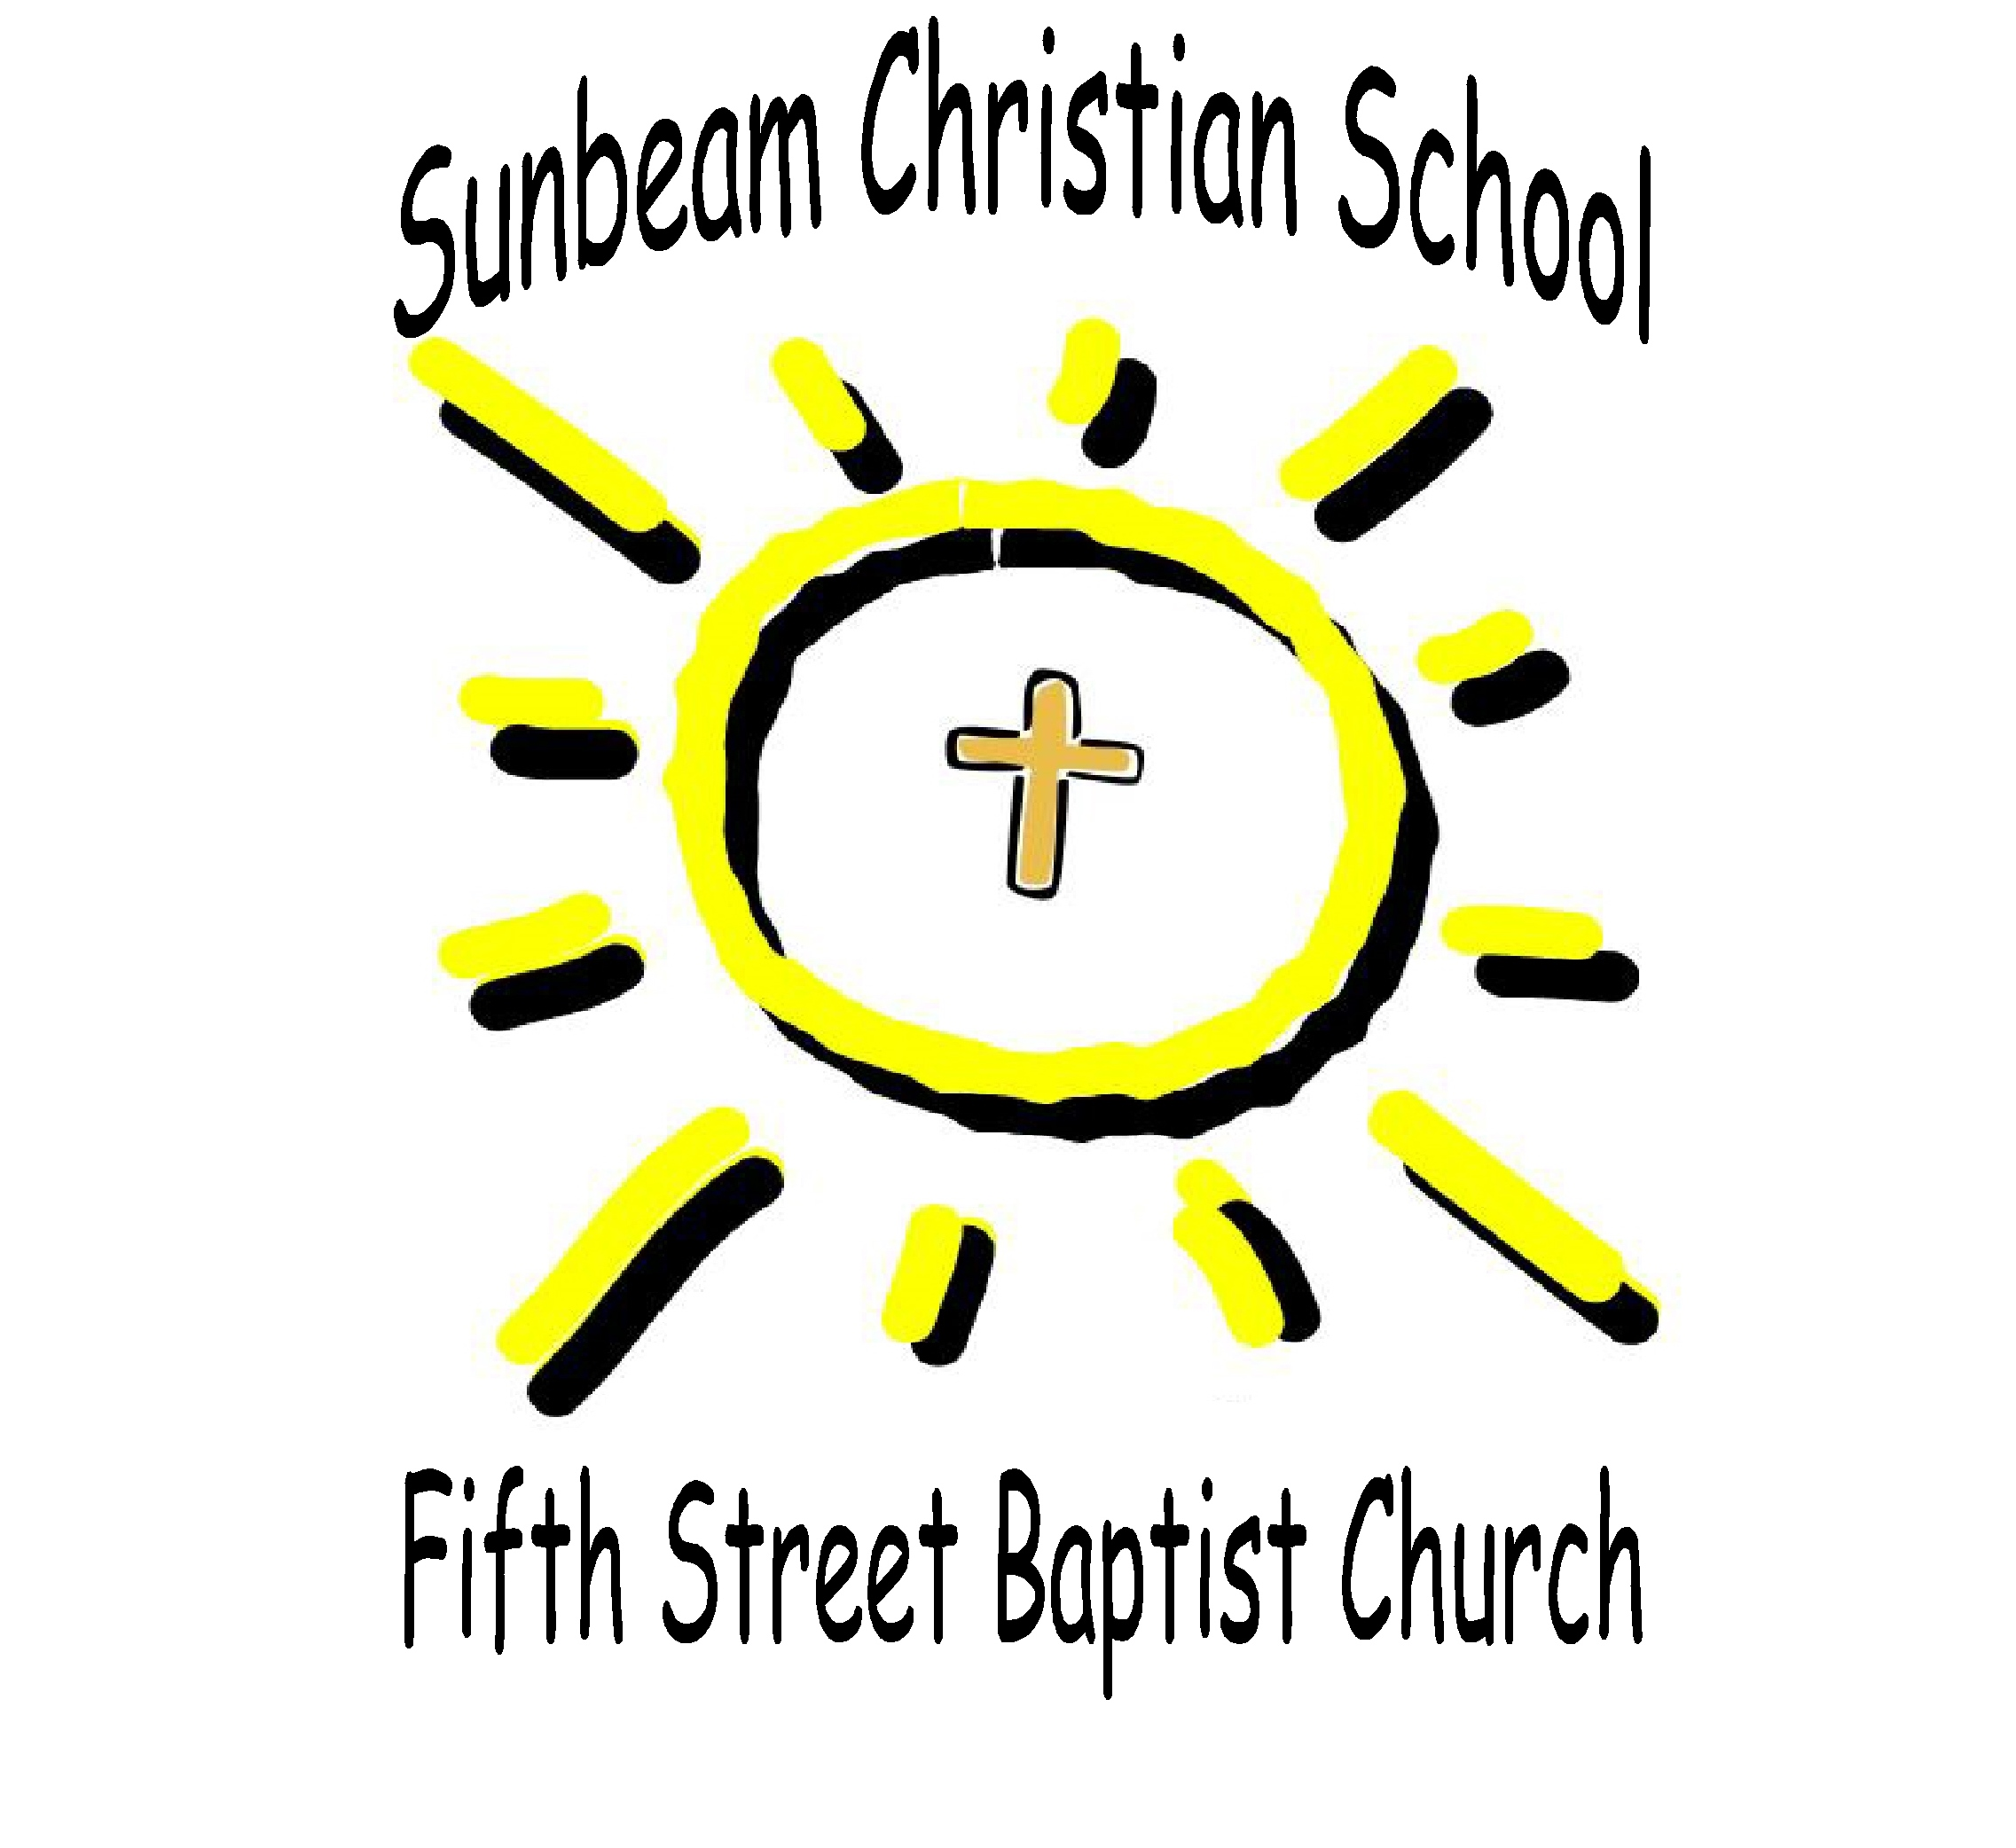 Sunbeam Christian School - Growing children in God's way!